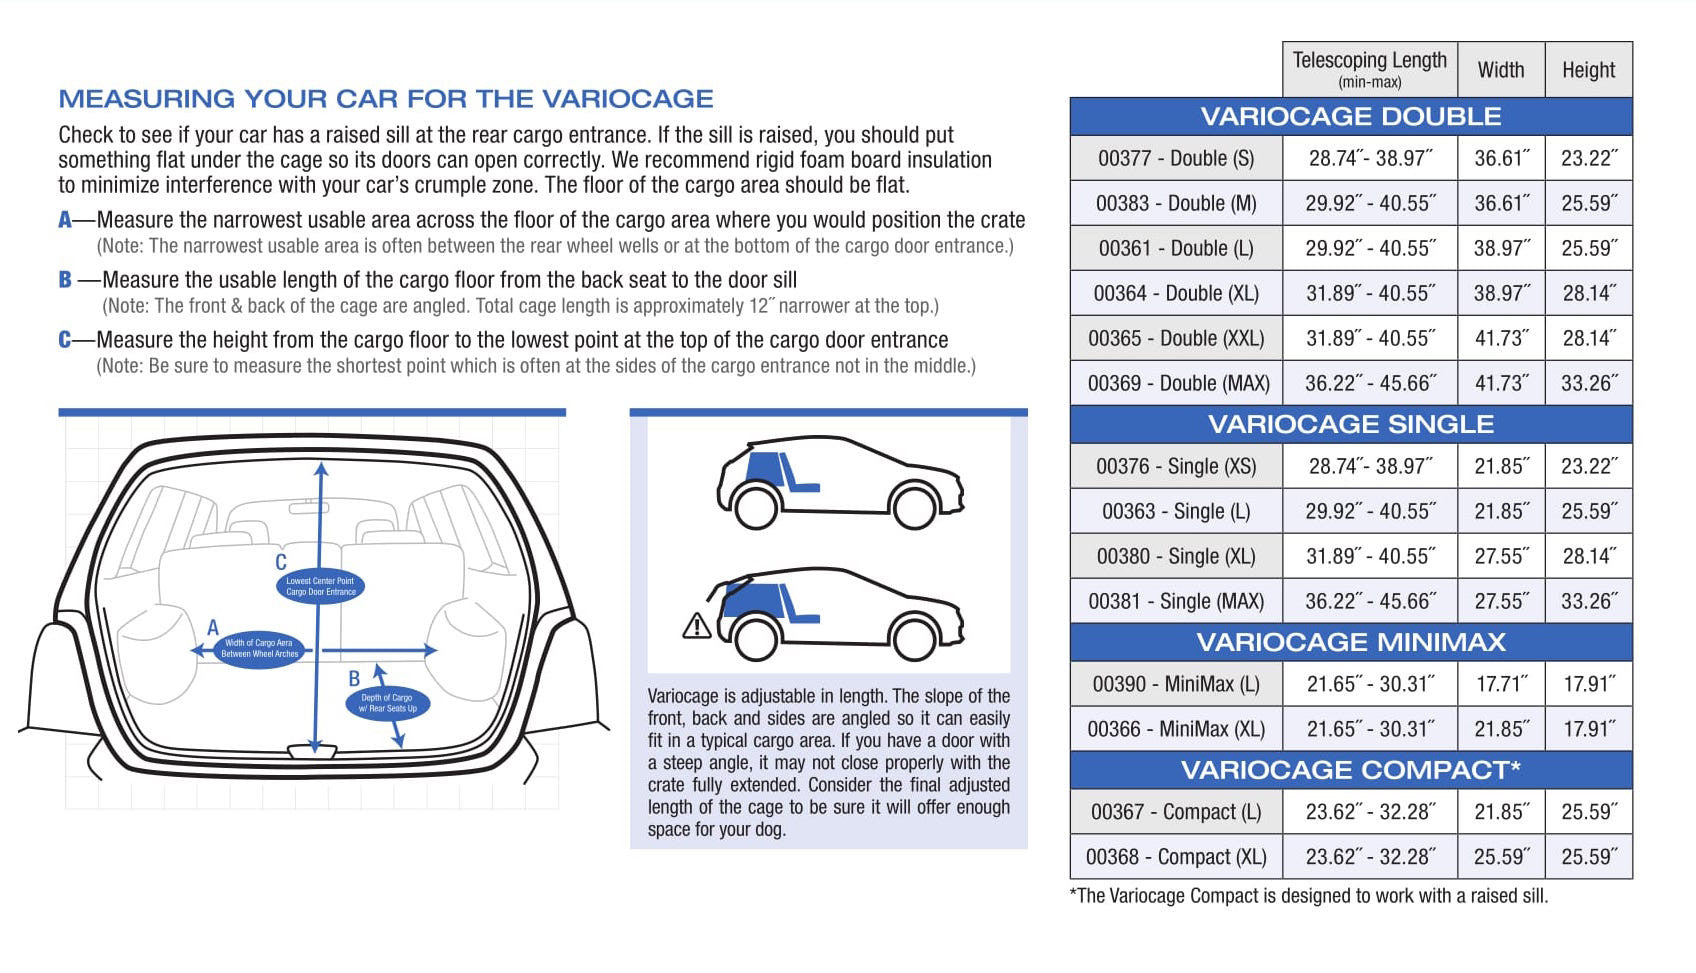 Variocage Vehicle Measuring Instructions